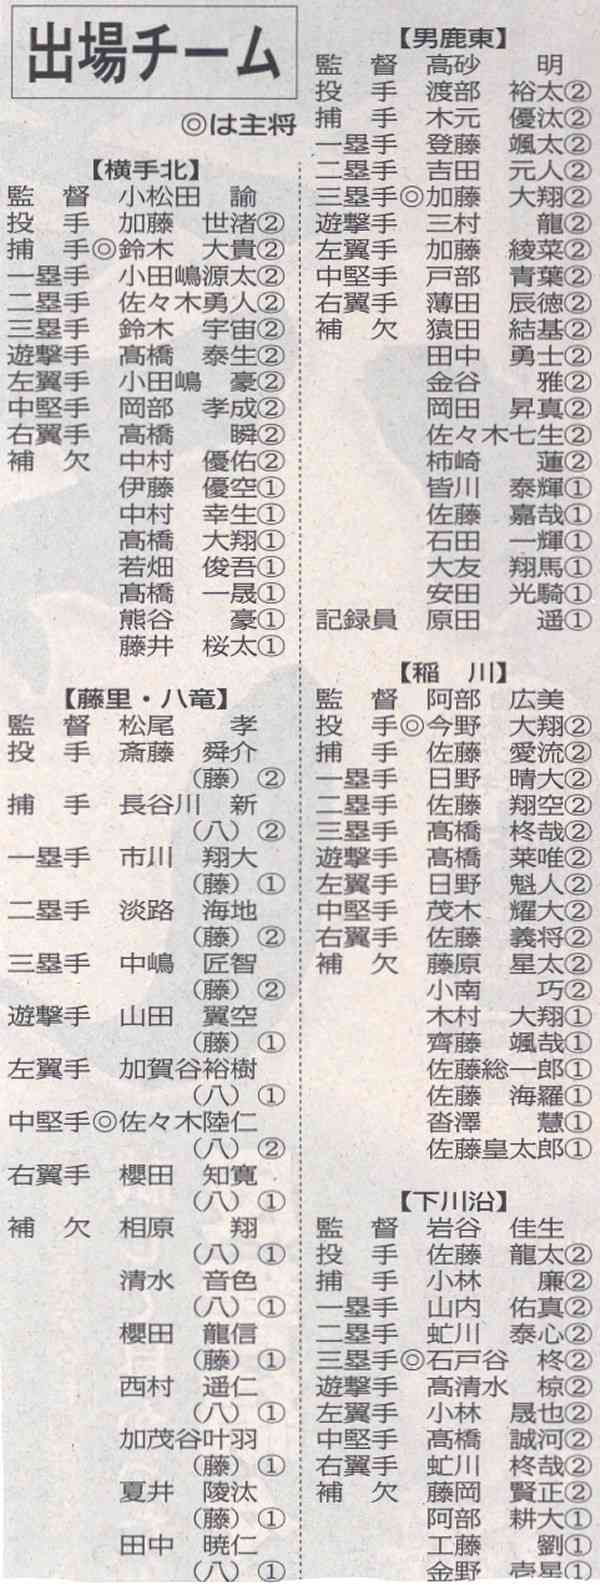 Scan10002